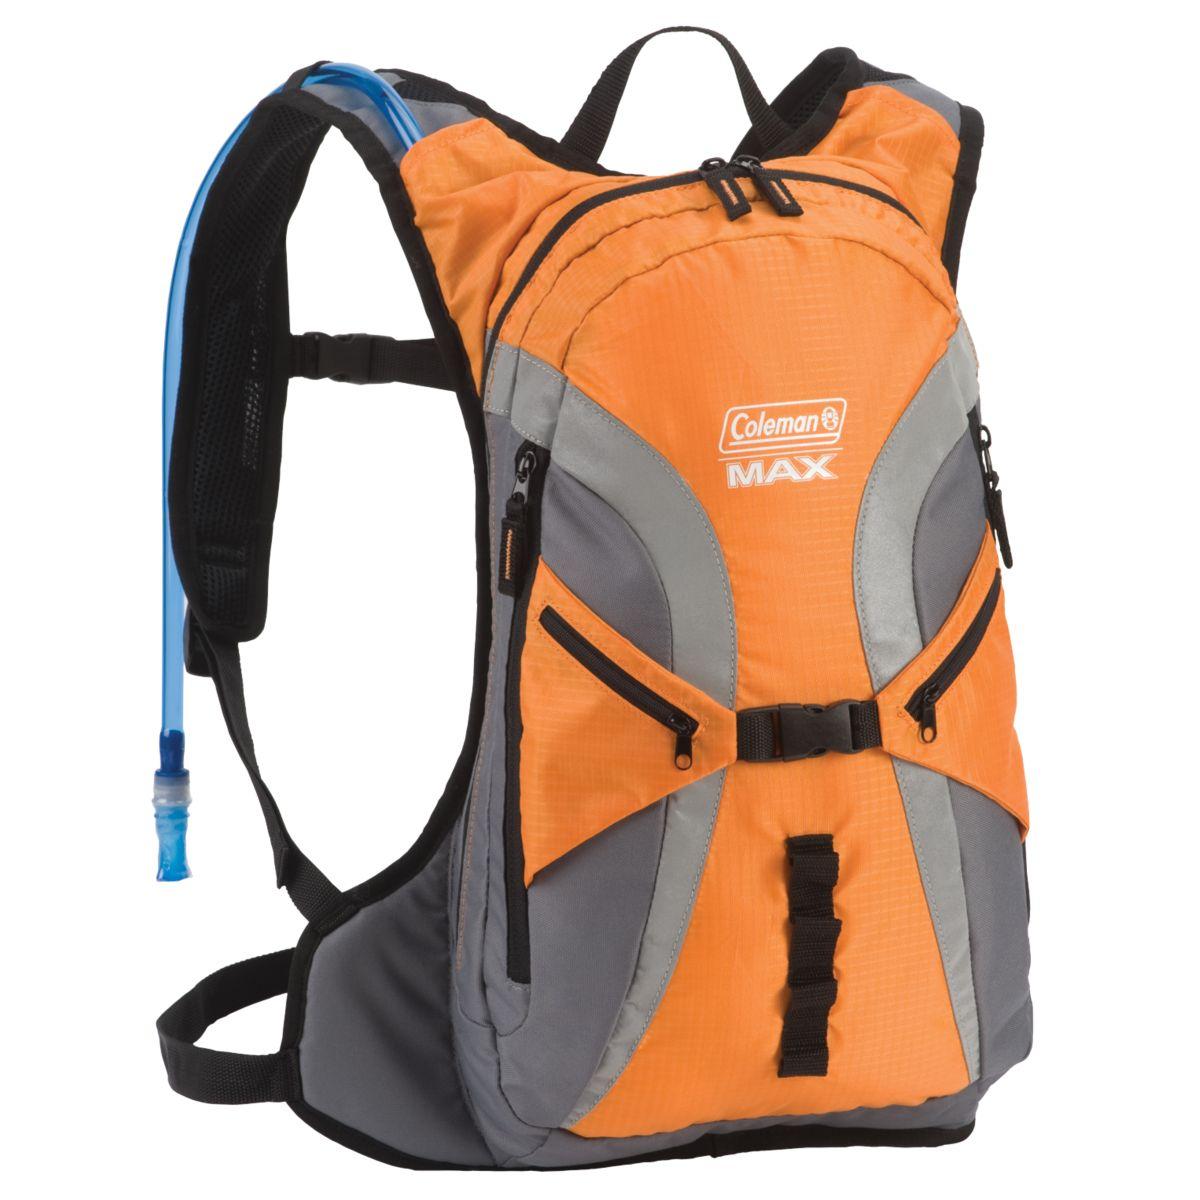 Hiking Backpack With Hydration qsbkVIf8